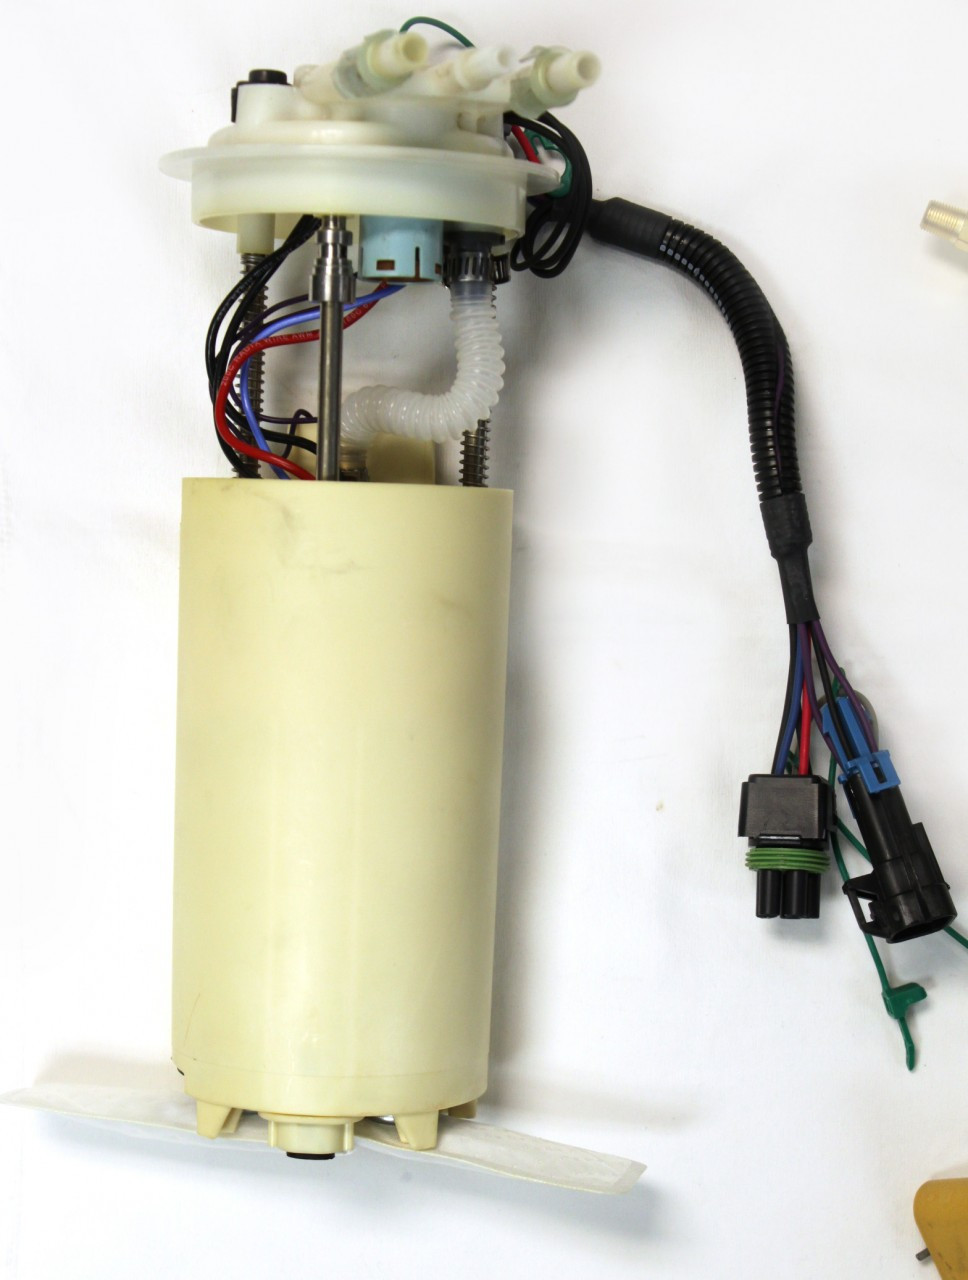 99-02 Camaro/Firebird Custom High Performance Dual In-Tank Fuel Pump  Assembly